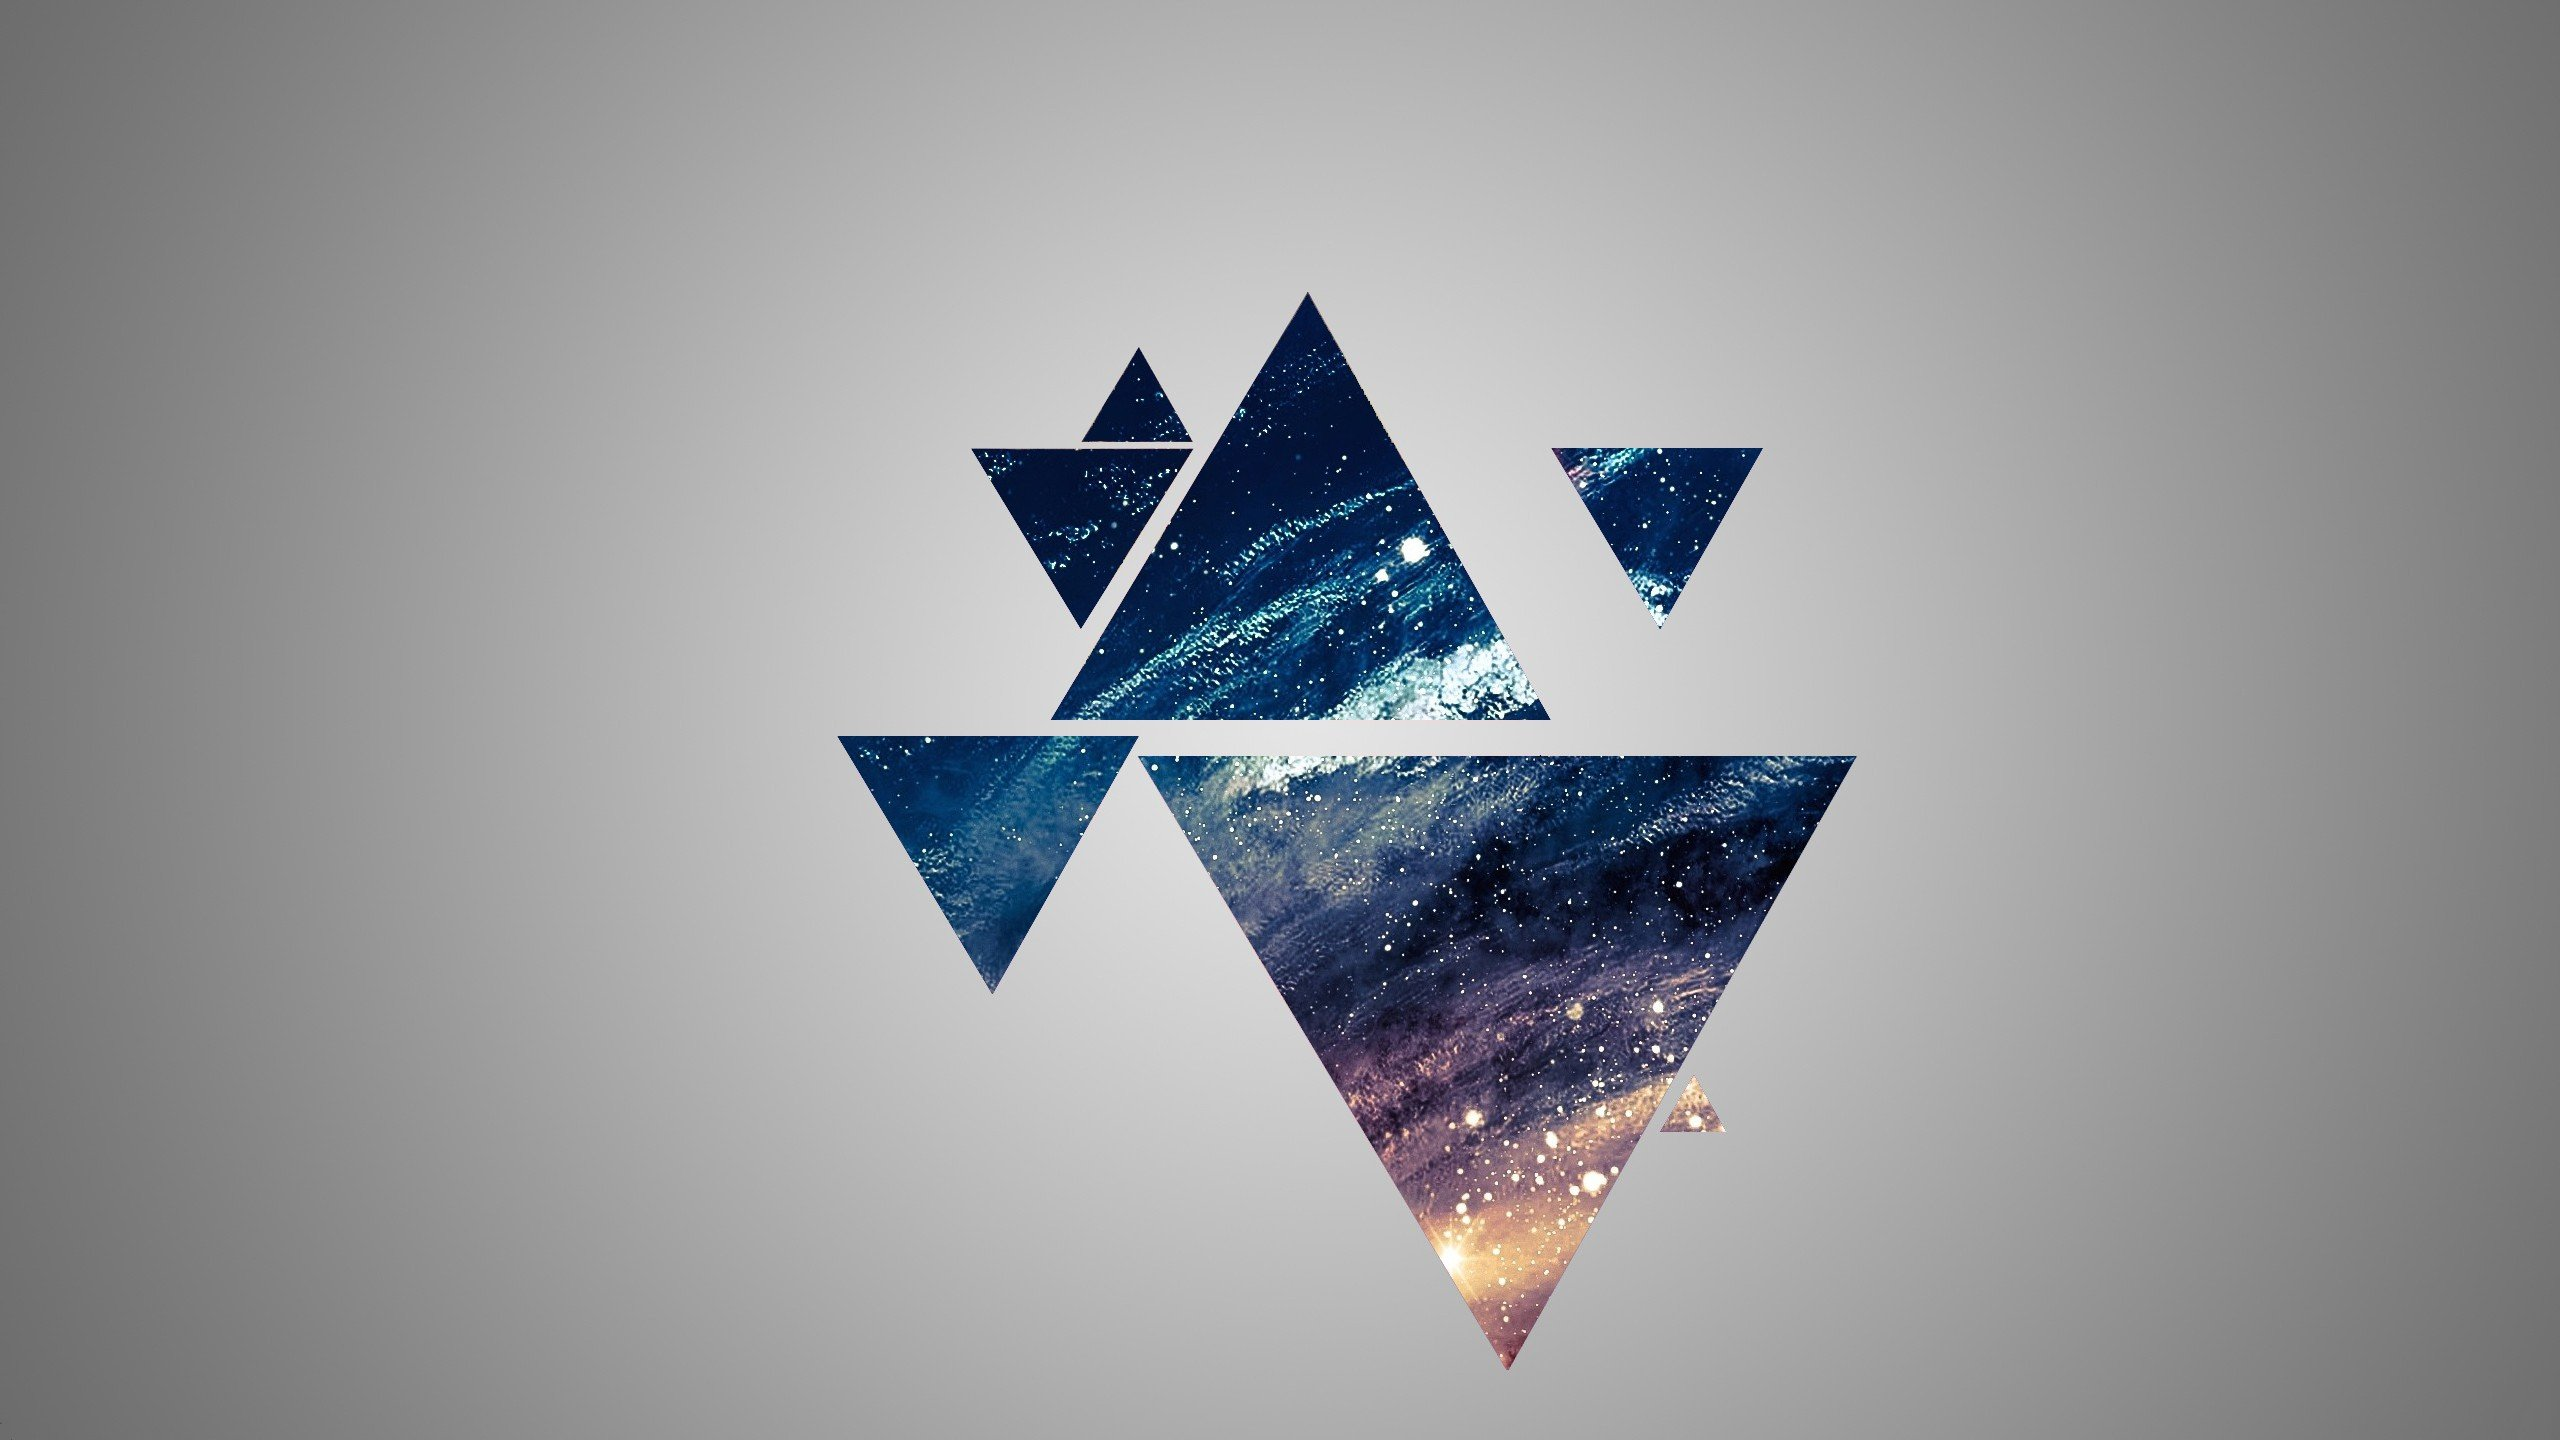 New 4k 3d Hd Wallpaper Space Blue Yellow Gray Triangle Hd Wallpapers